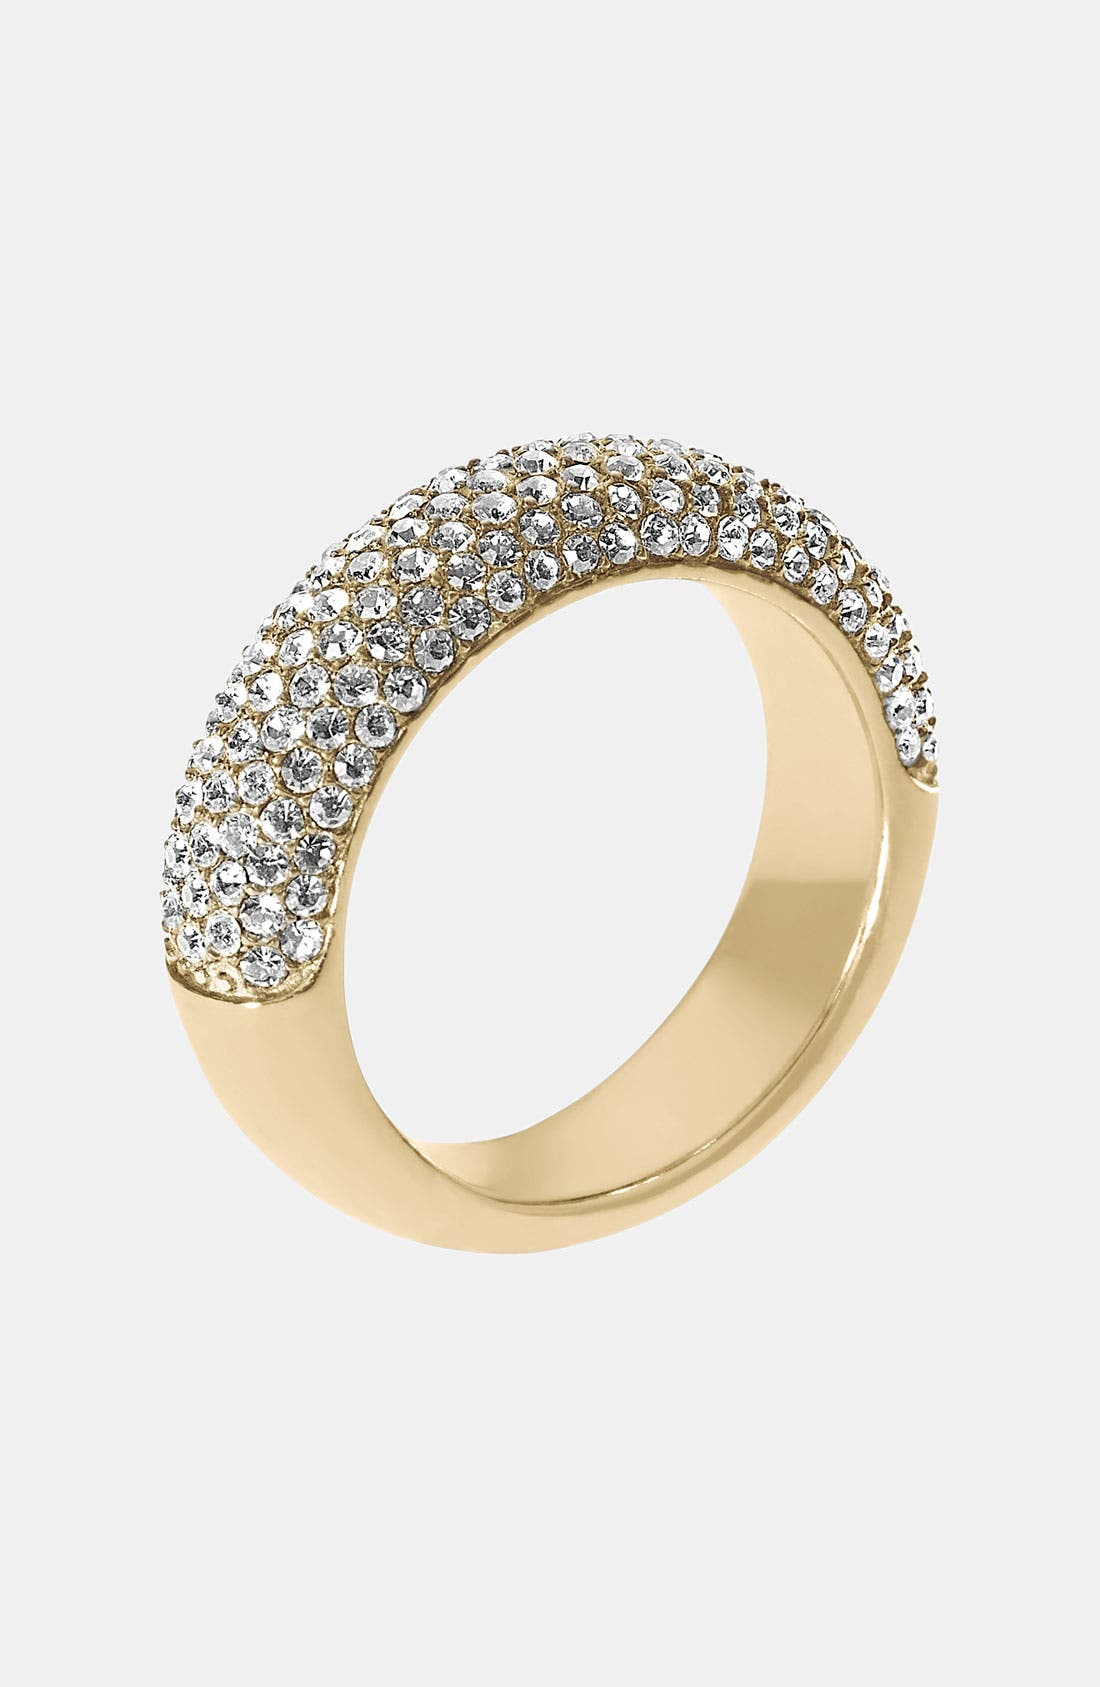 Main Image - Michael Kors 'Brilliance' Dome Ring